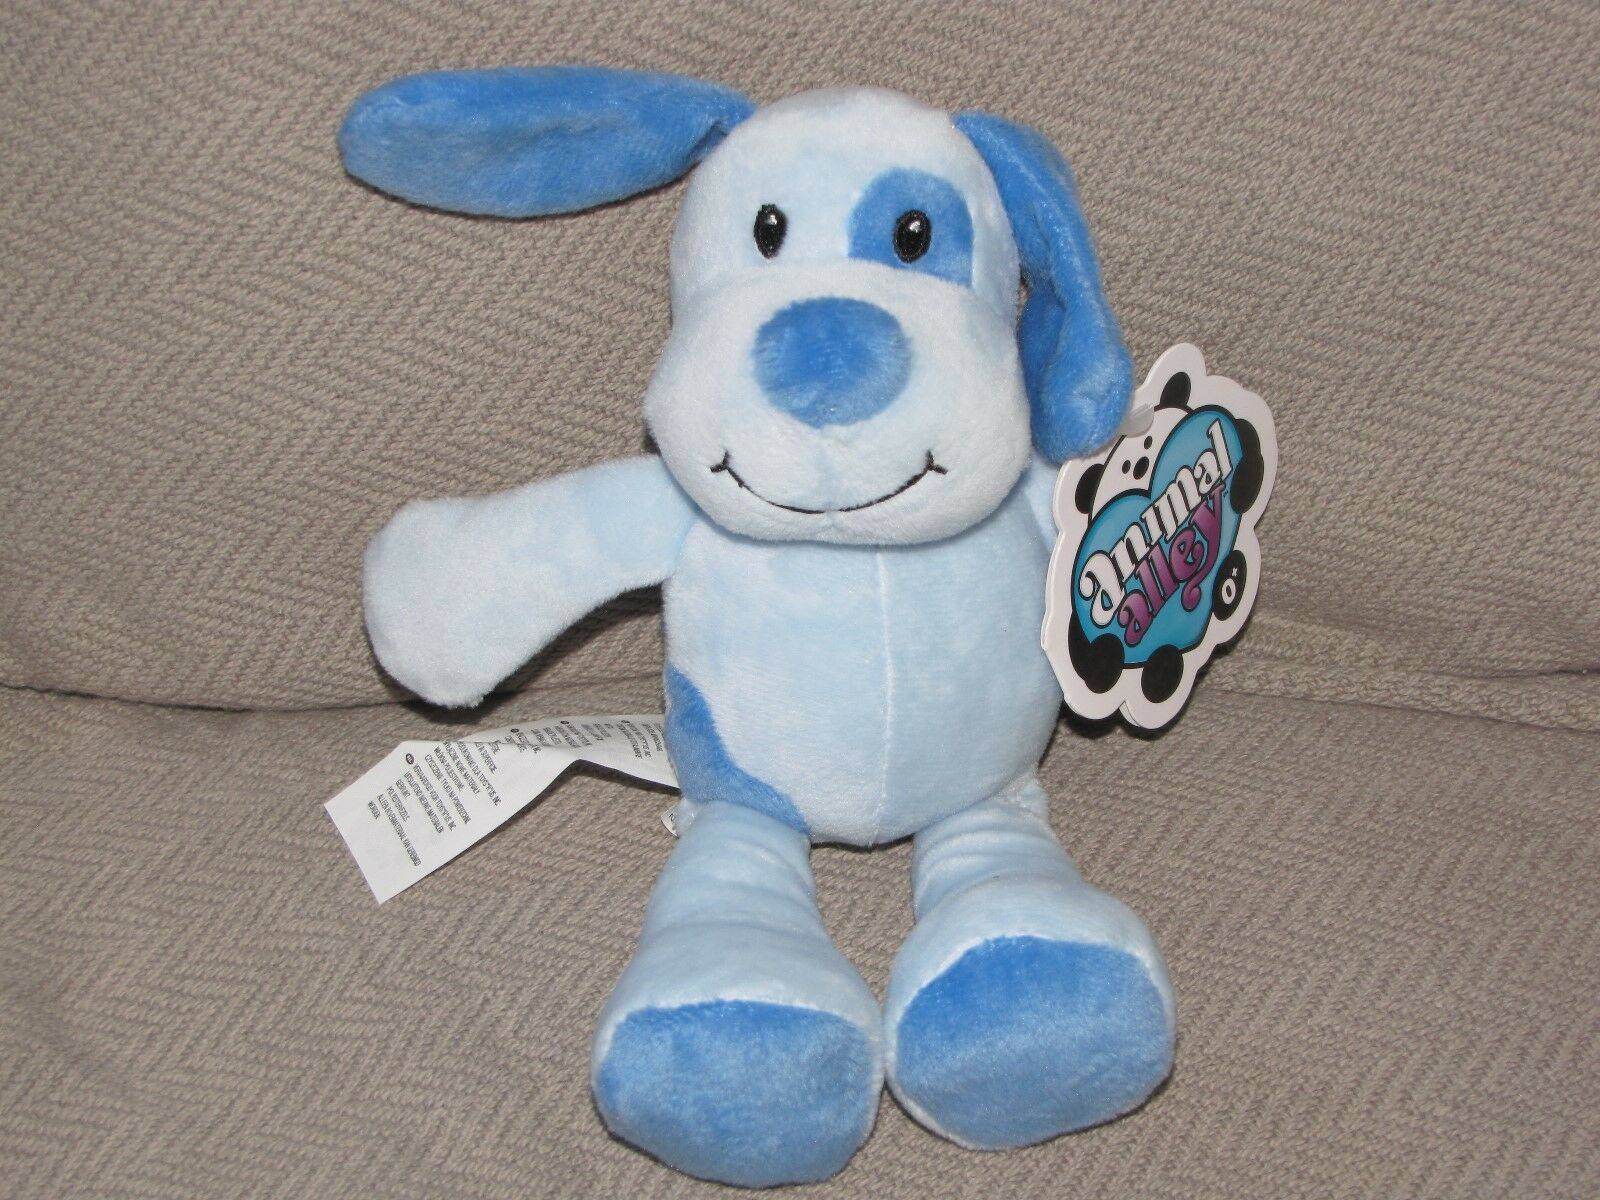 ANIMAL ALLEY TOYS R US STUFFED PLUSH Blau PUPPY DOG RATTLE BABY TOY 5